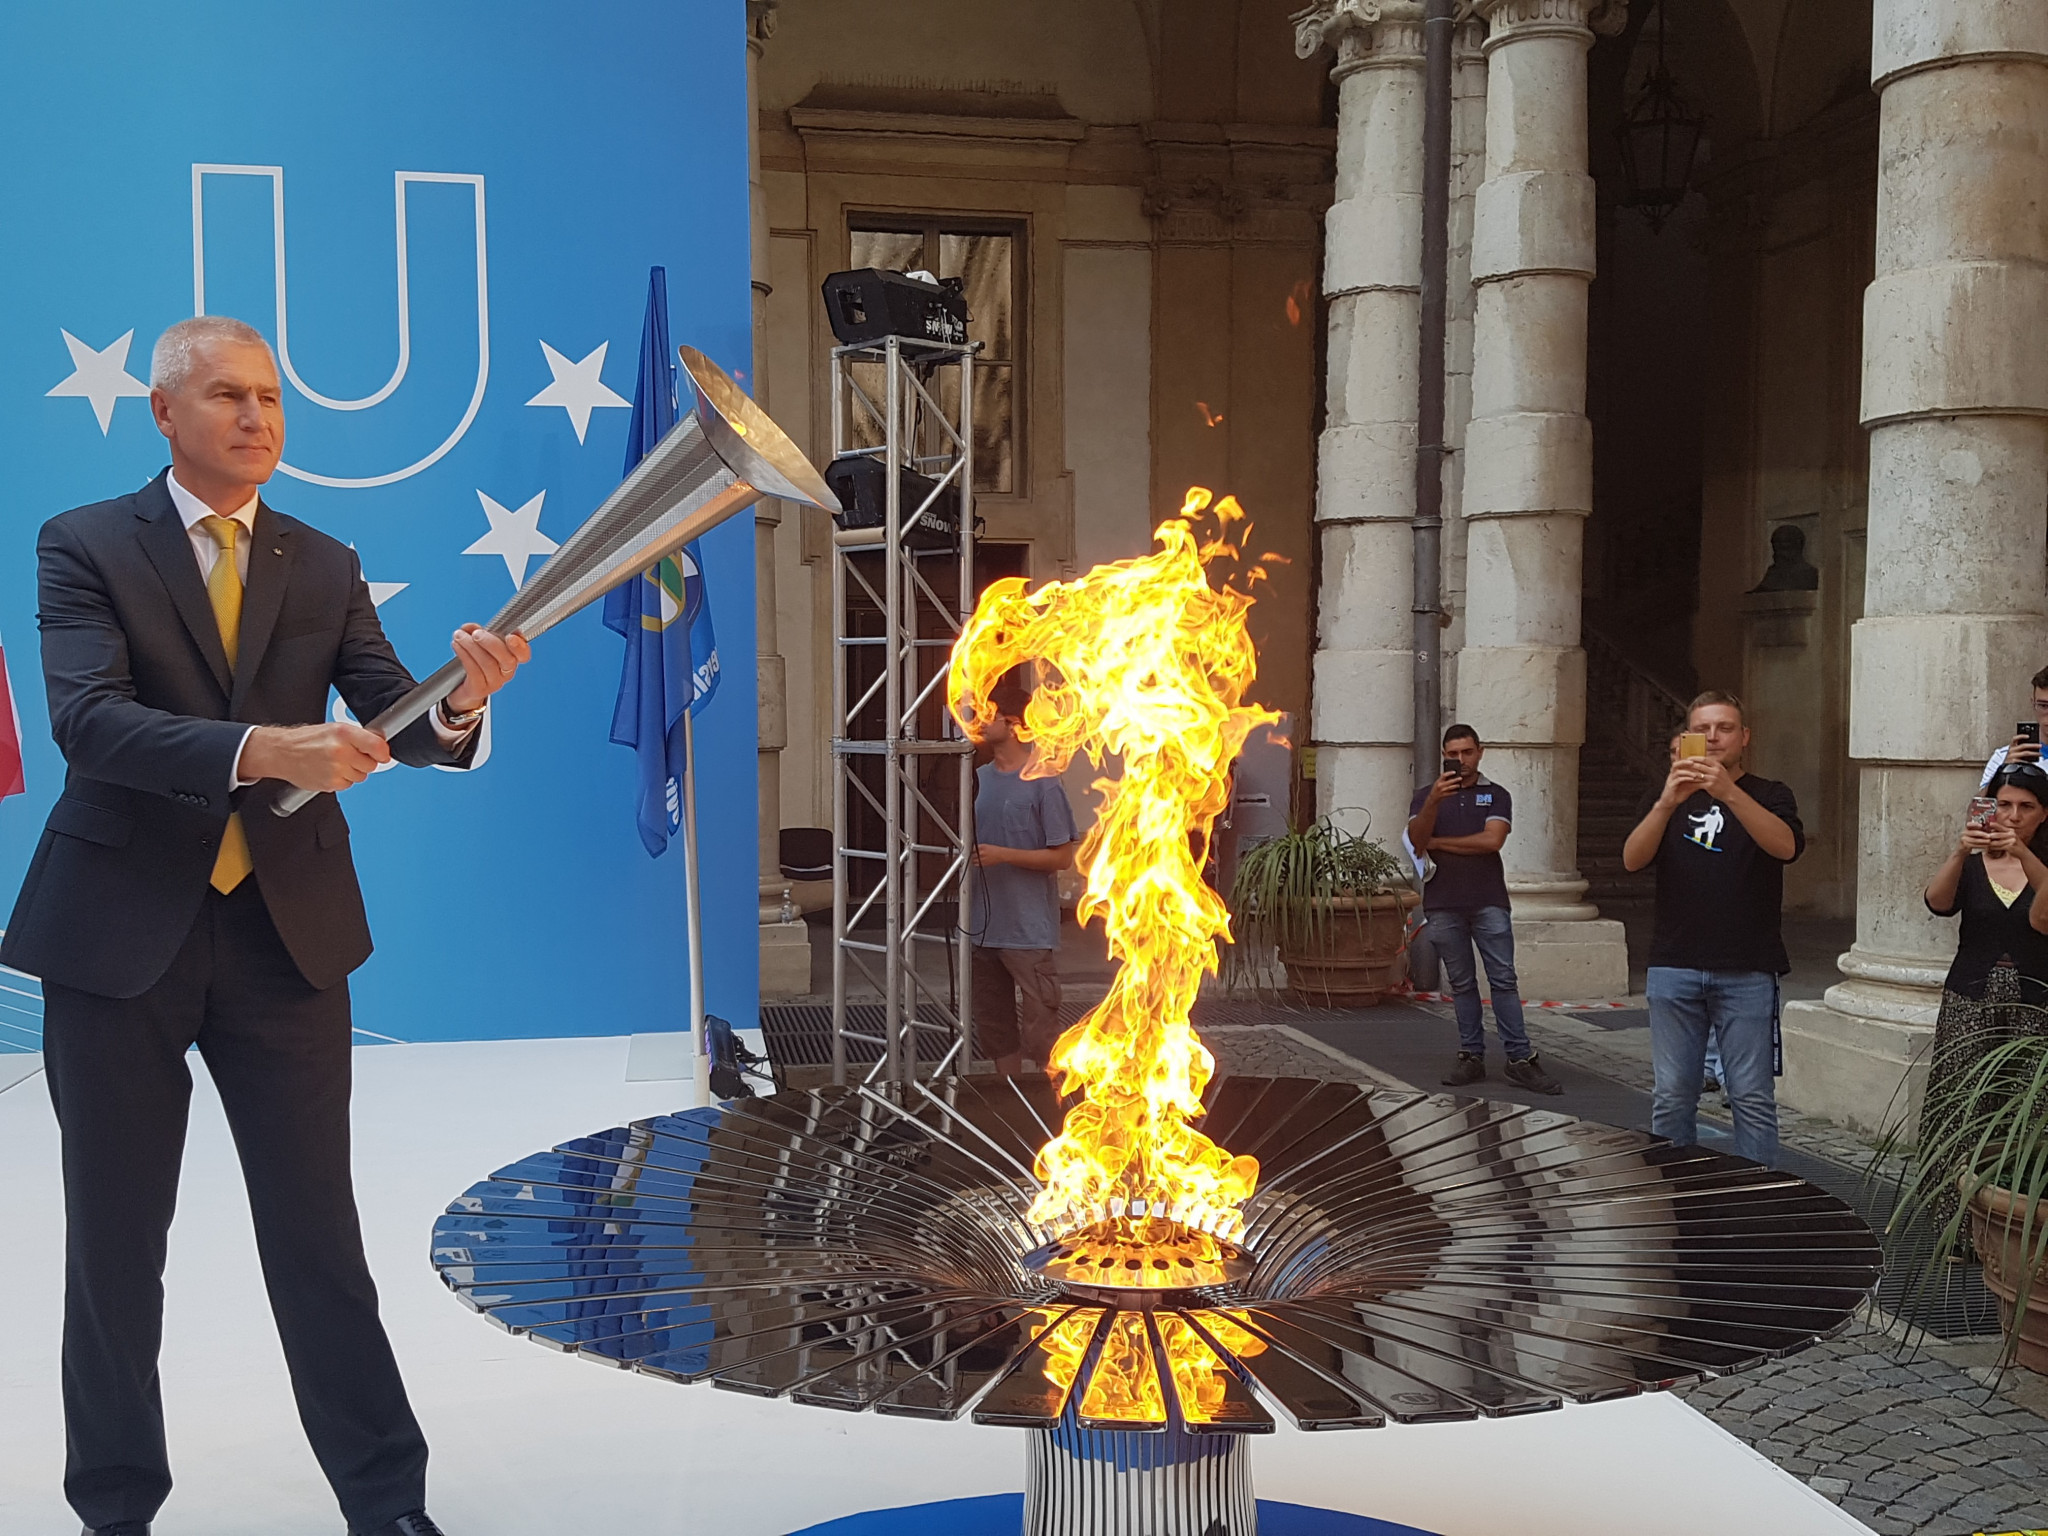 Krasnoyarsk 2019 Torch Relay begins following ceremony at University of Turin